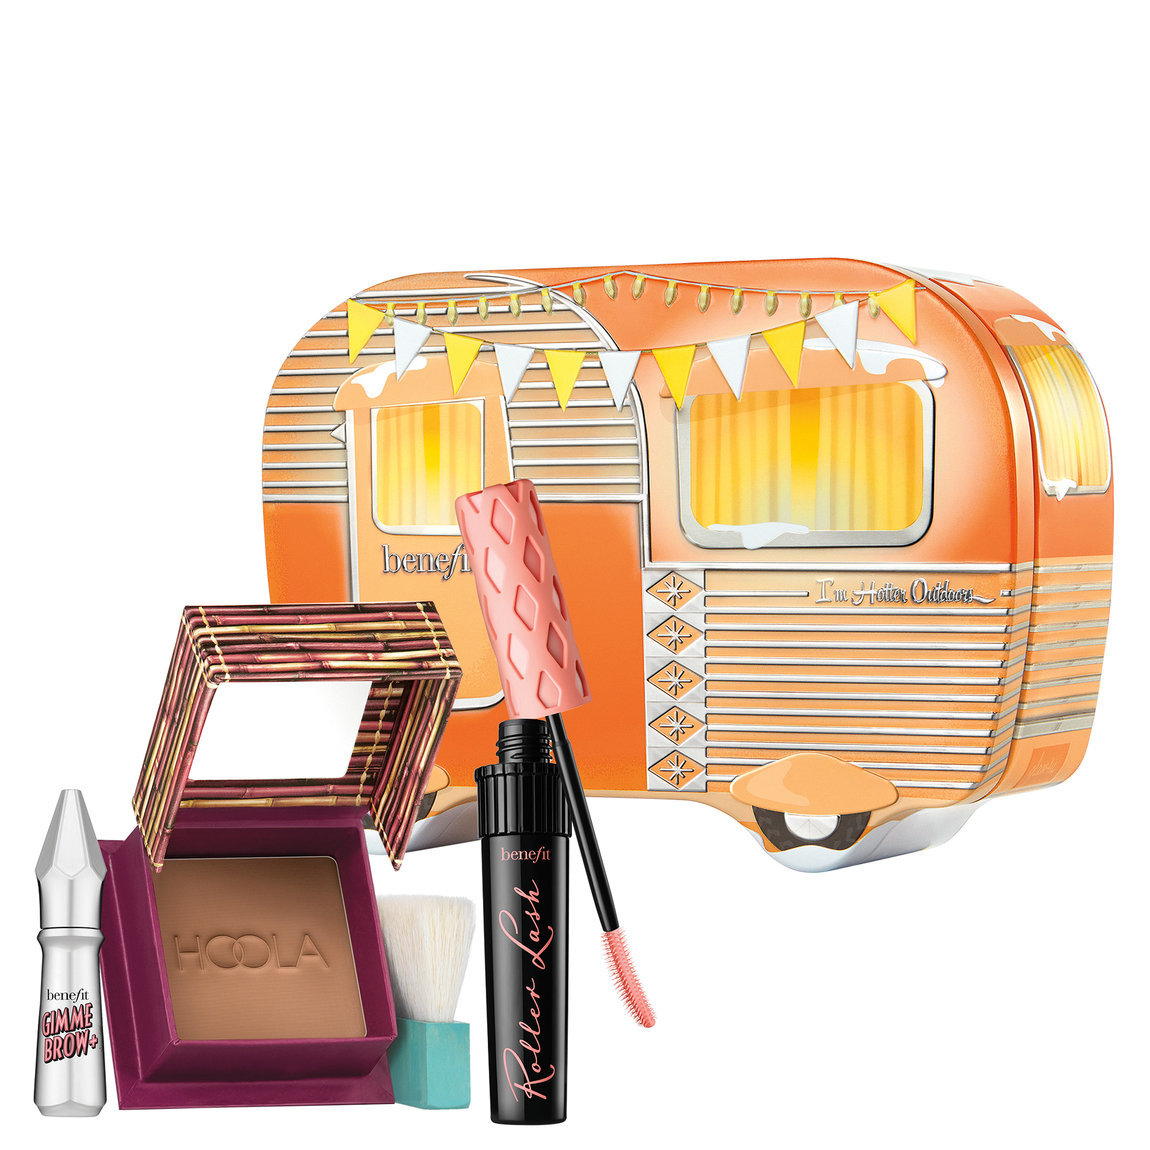 Benefit Cosmetics I'm Hotter Outdoors product swatch.